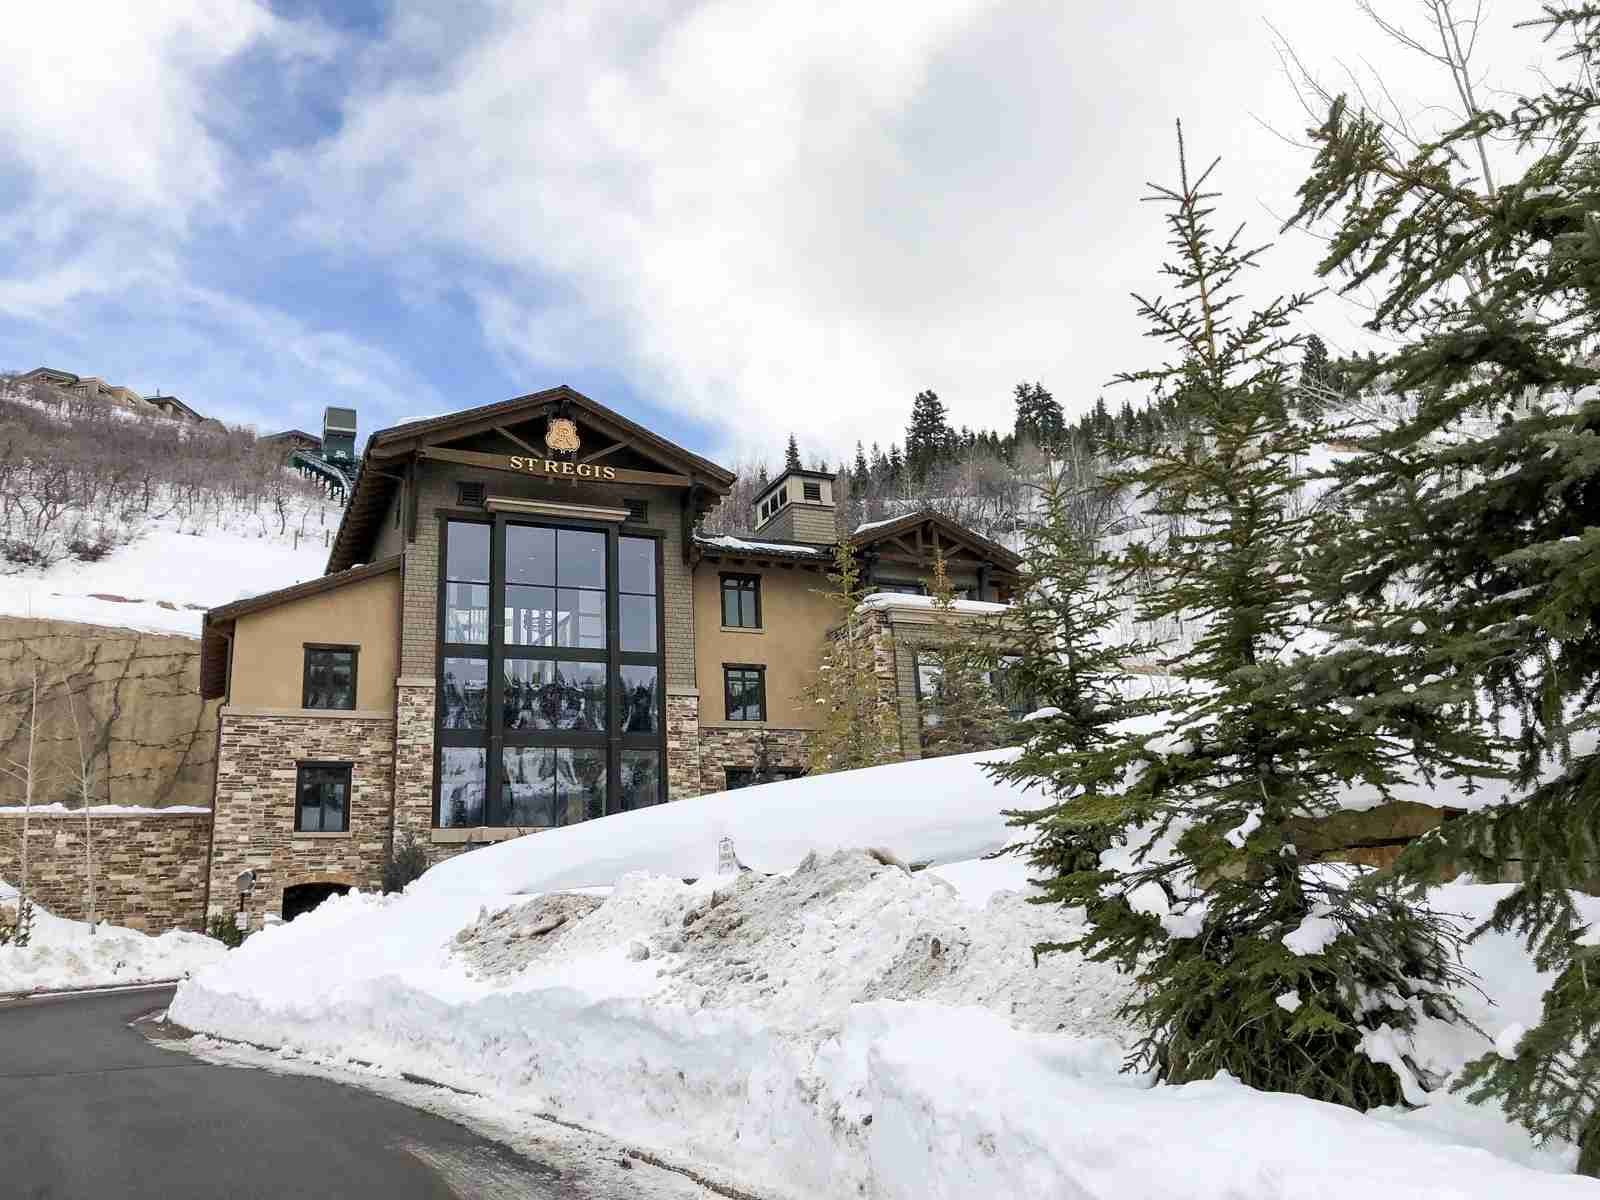 The St. Regis Deer Valley provides slope-side access. (Photo by Summer Hull / The Points Guy)